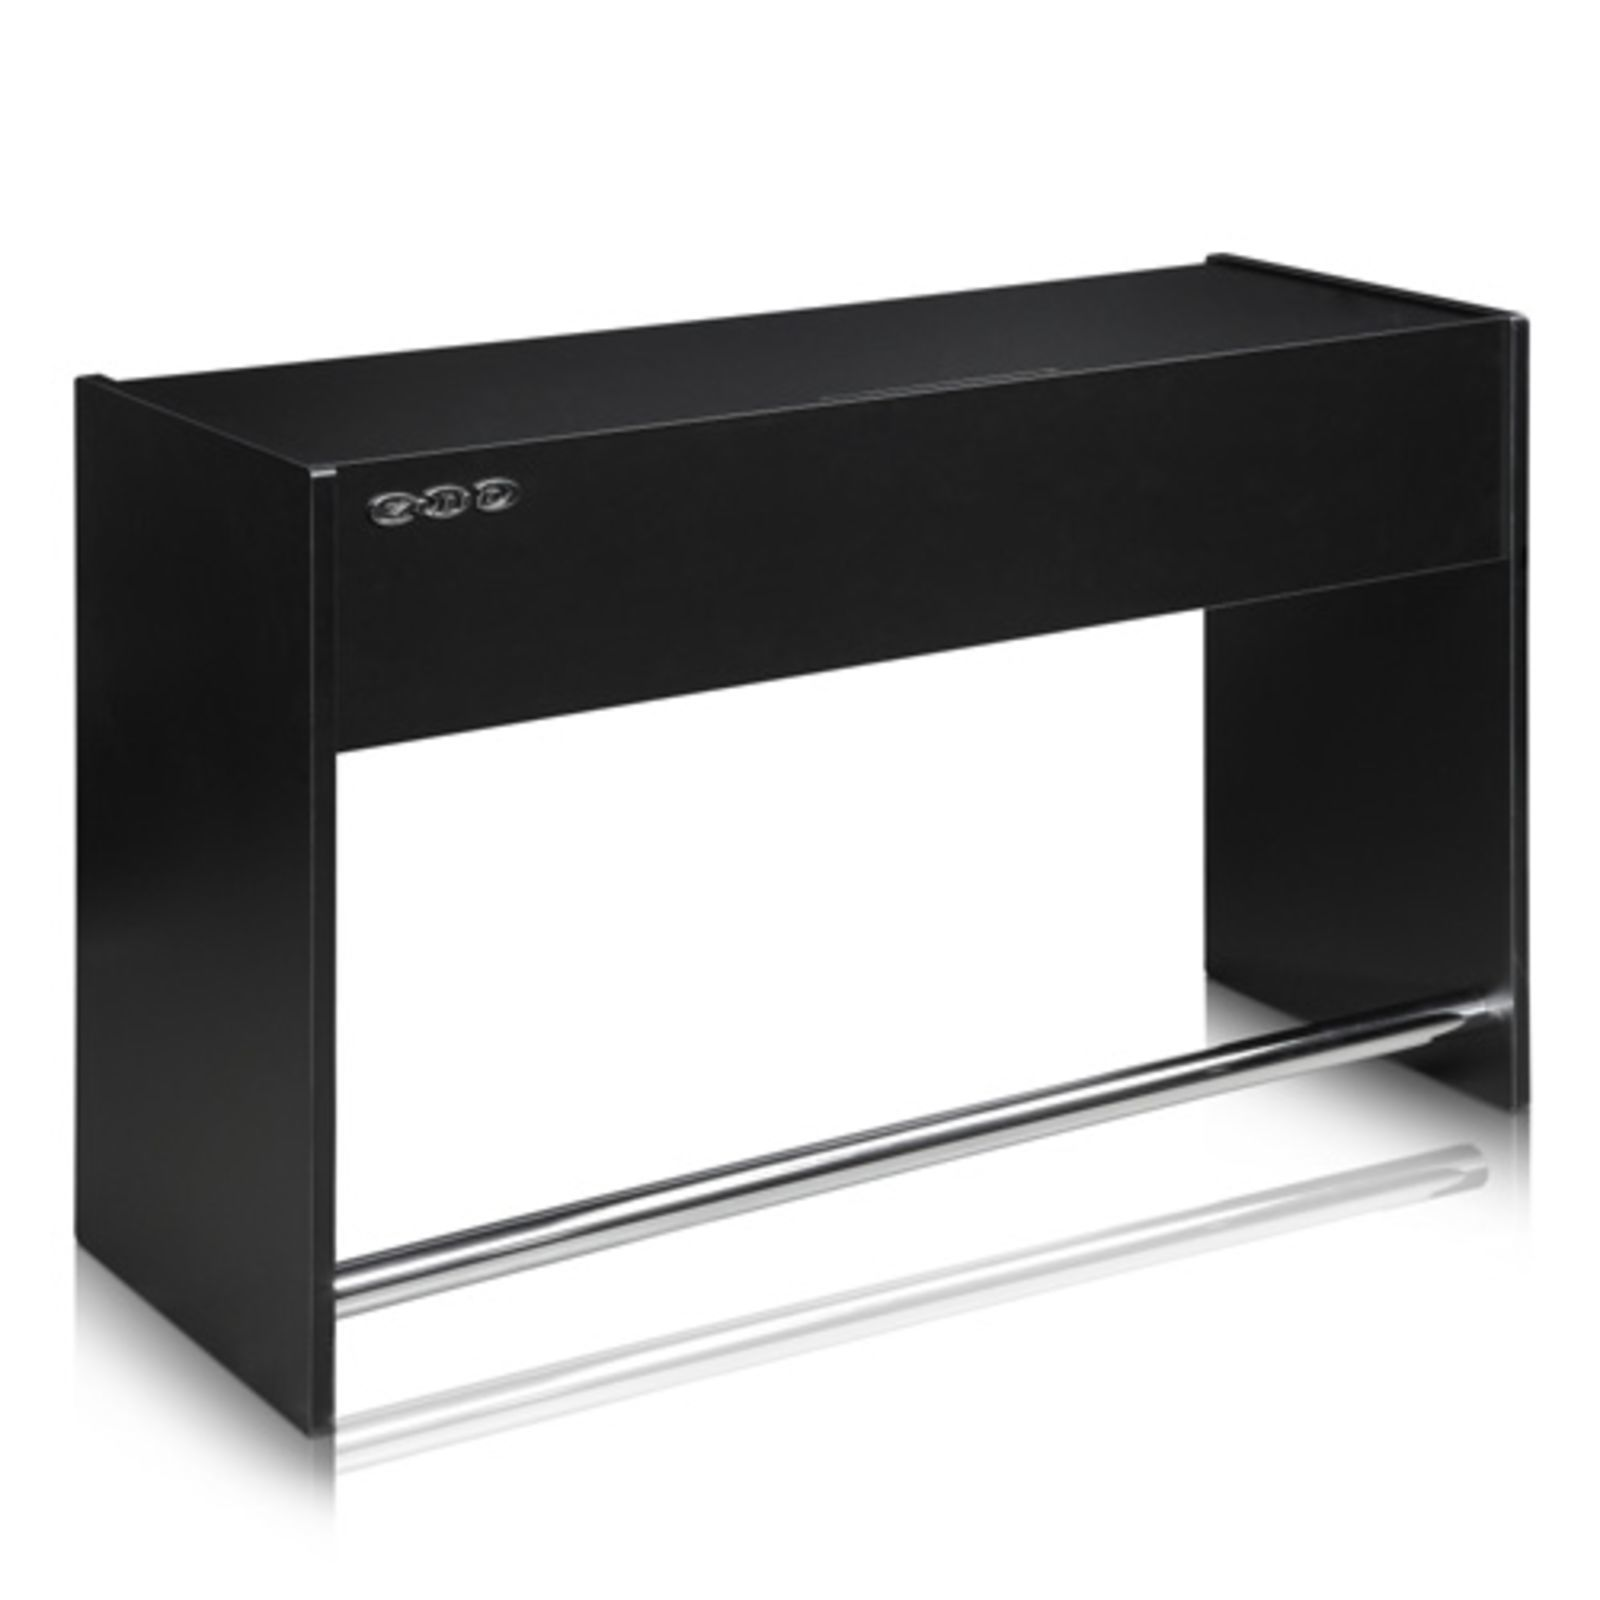 Zomo Deck Stand Ibiza 150 black  Product Image